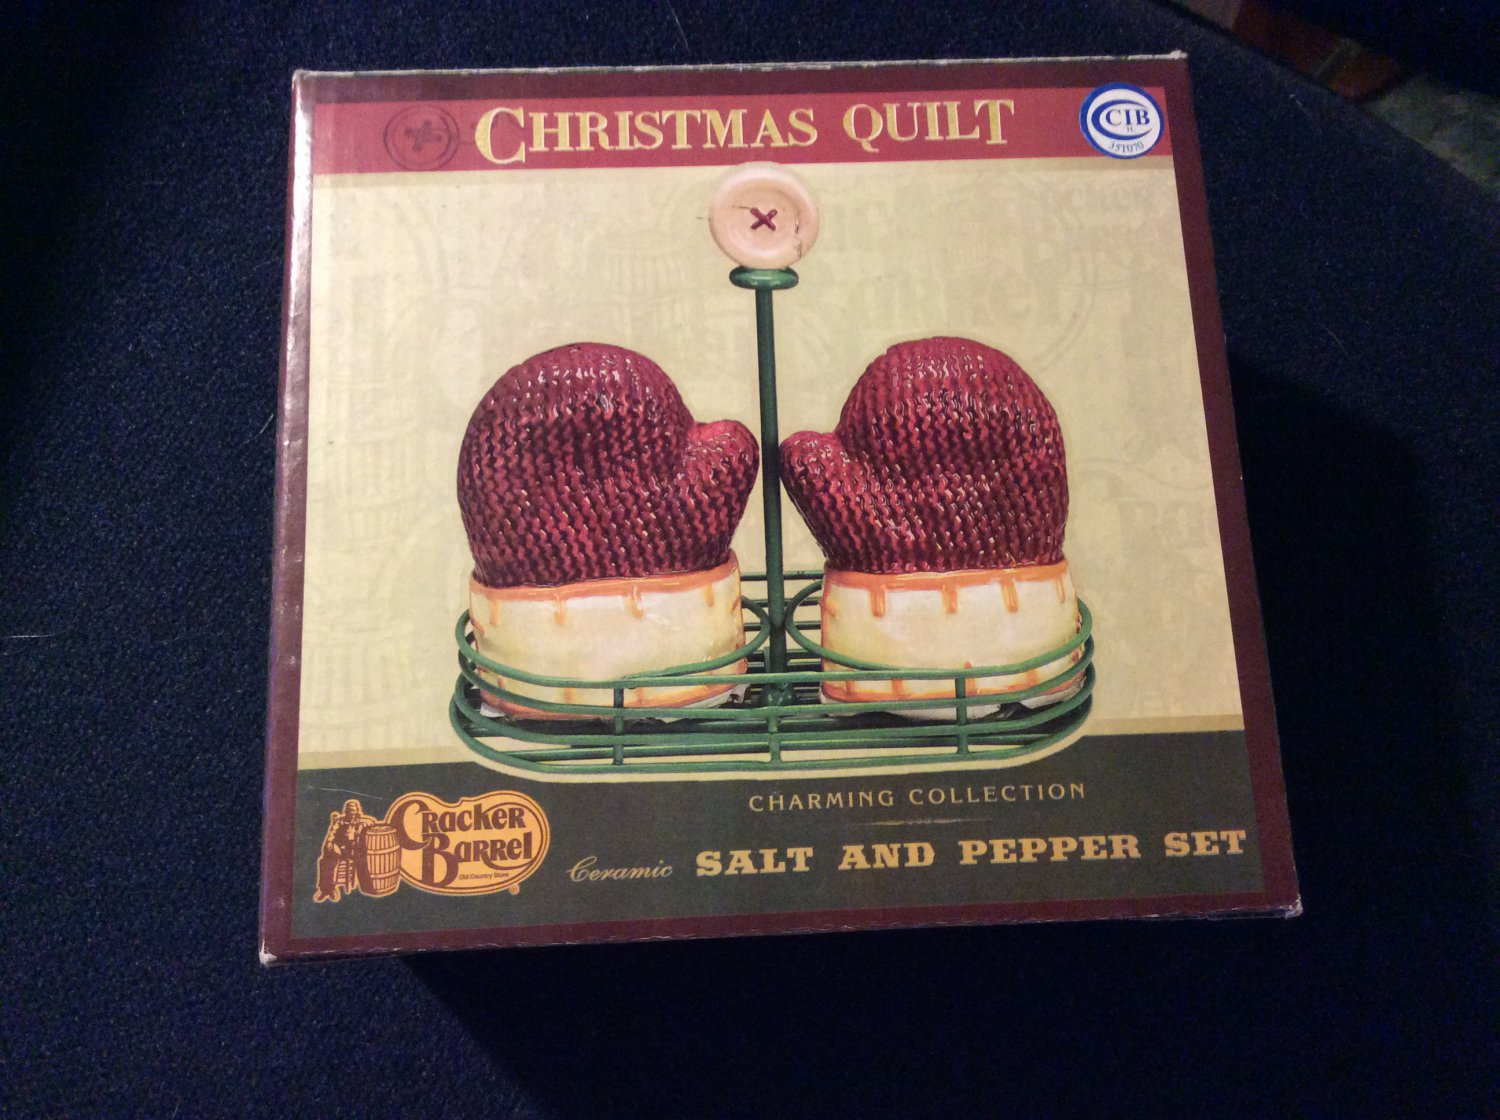 Christmas Quilt Mittens Salt and Pepper Set by Cracker Barrel